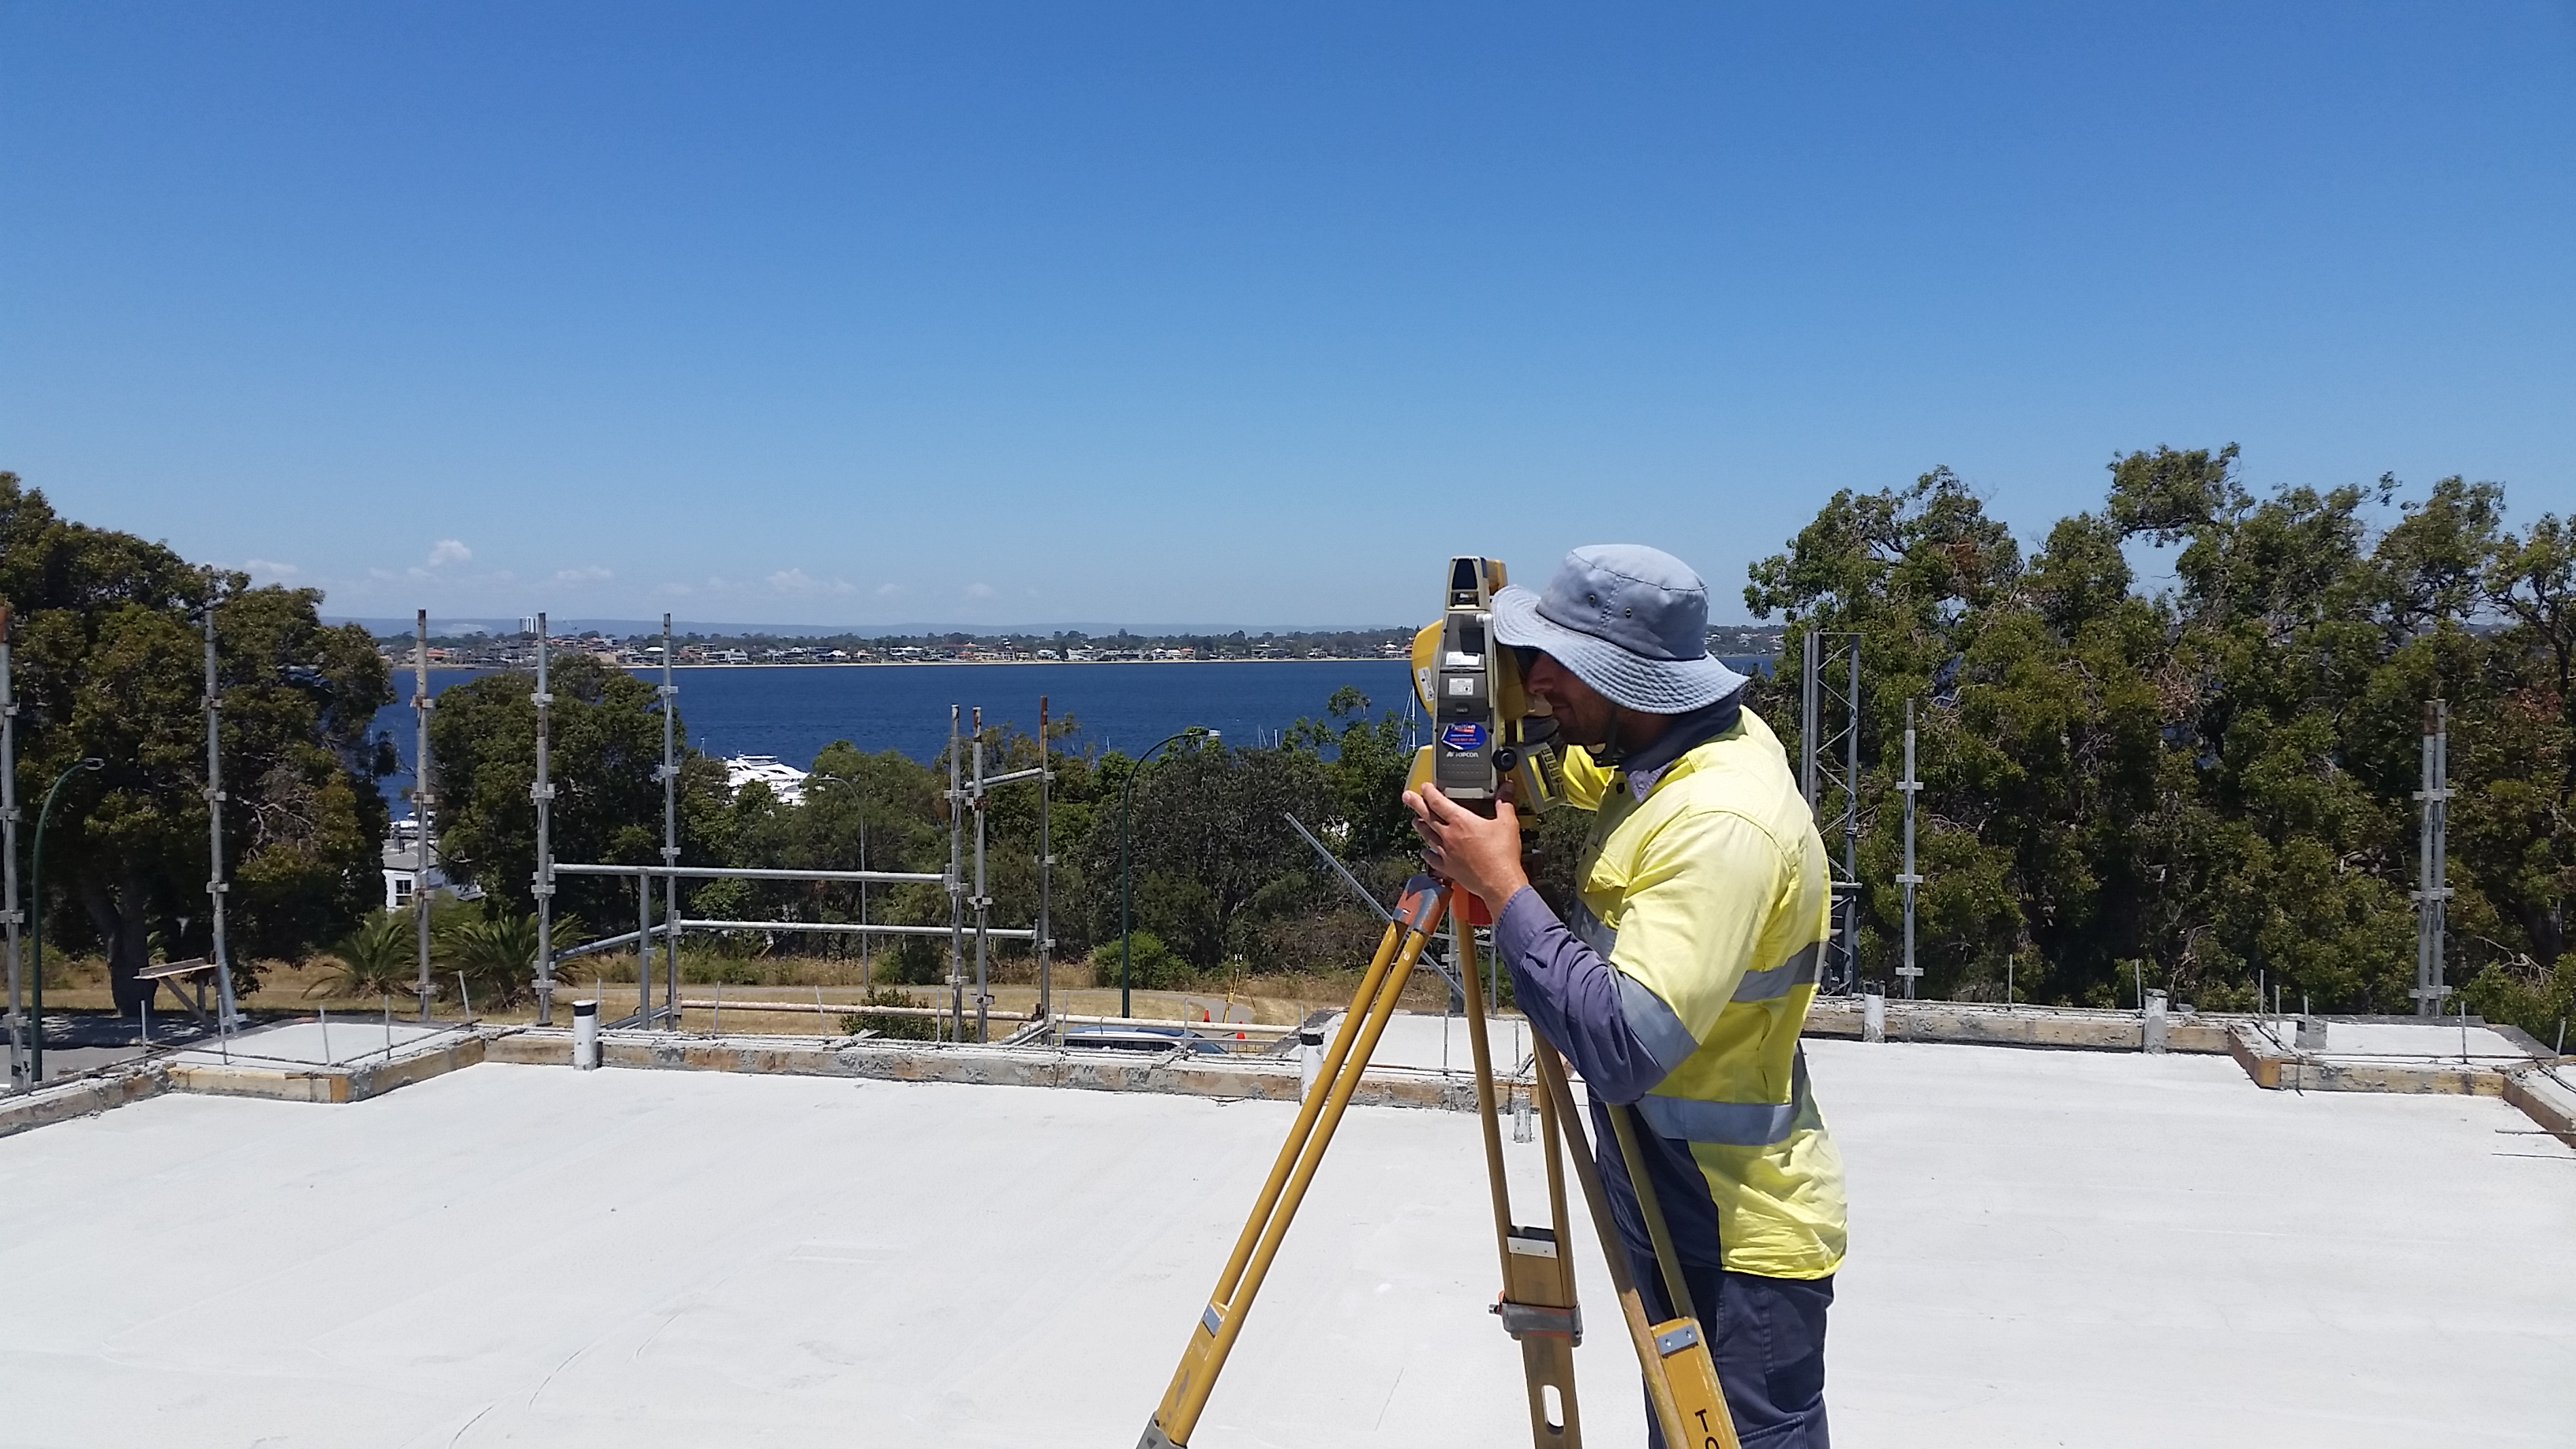 <h4>Experienced</h4> <h5>and professional surveys</h5> <p>R G Lester & Associates has built a fantastic team of surveying professionals, all of whom are committed to providing the most detailed and comprehensive surveys to a high degree of accuracy.</p> <p>We have all the skills, resources, tools and state-of-the-art surveying equipment necessary to complete even the most complex surveying projects in the fastest turnaround times possible – and all at competitive rates.</p> <p> </p> <p> </p> <p> </p>